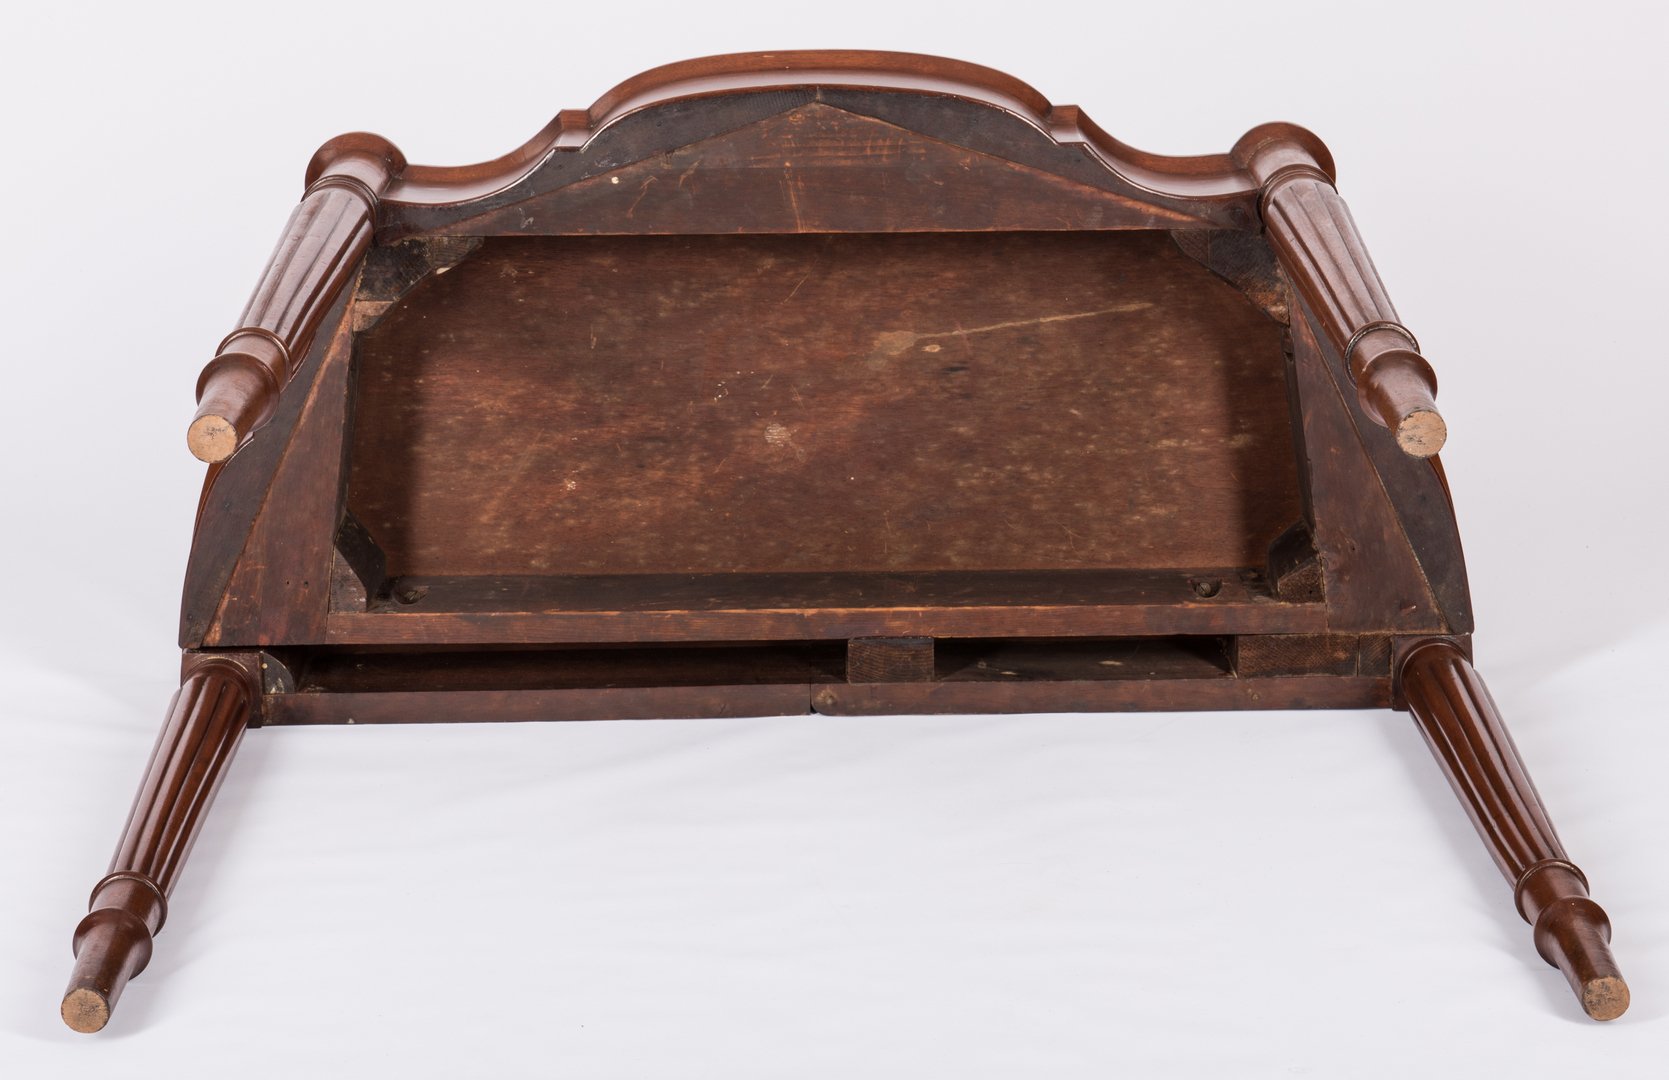 Lot 599 american sheraton mahogany card table for 101 great american poems table of contents